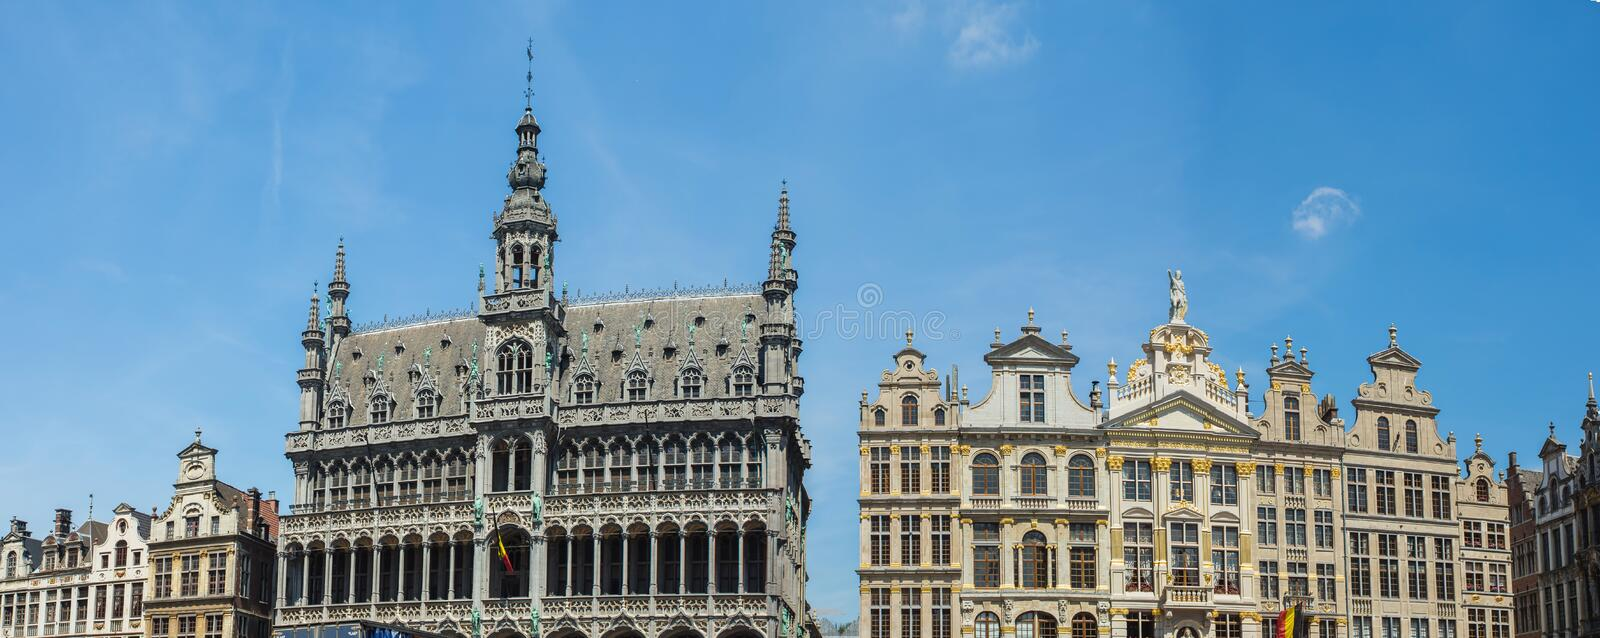 Grand Place is het stadscentrum van Brussel royalty-vrije stock fotografie